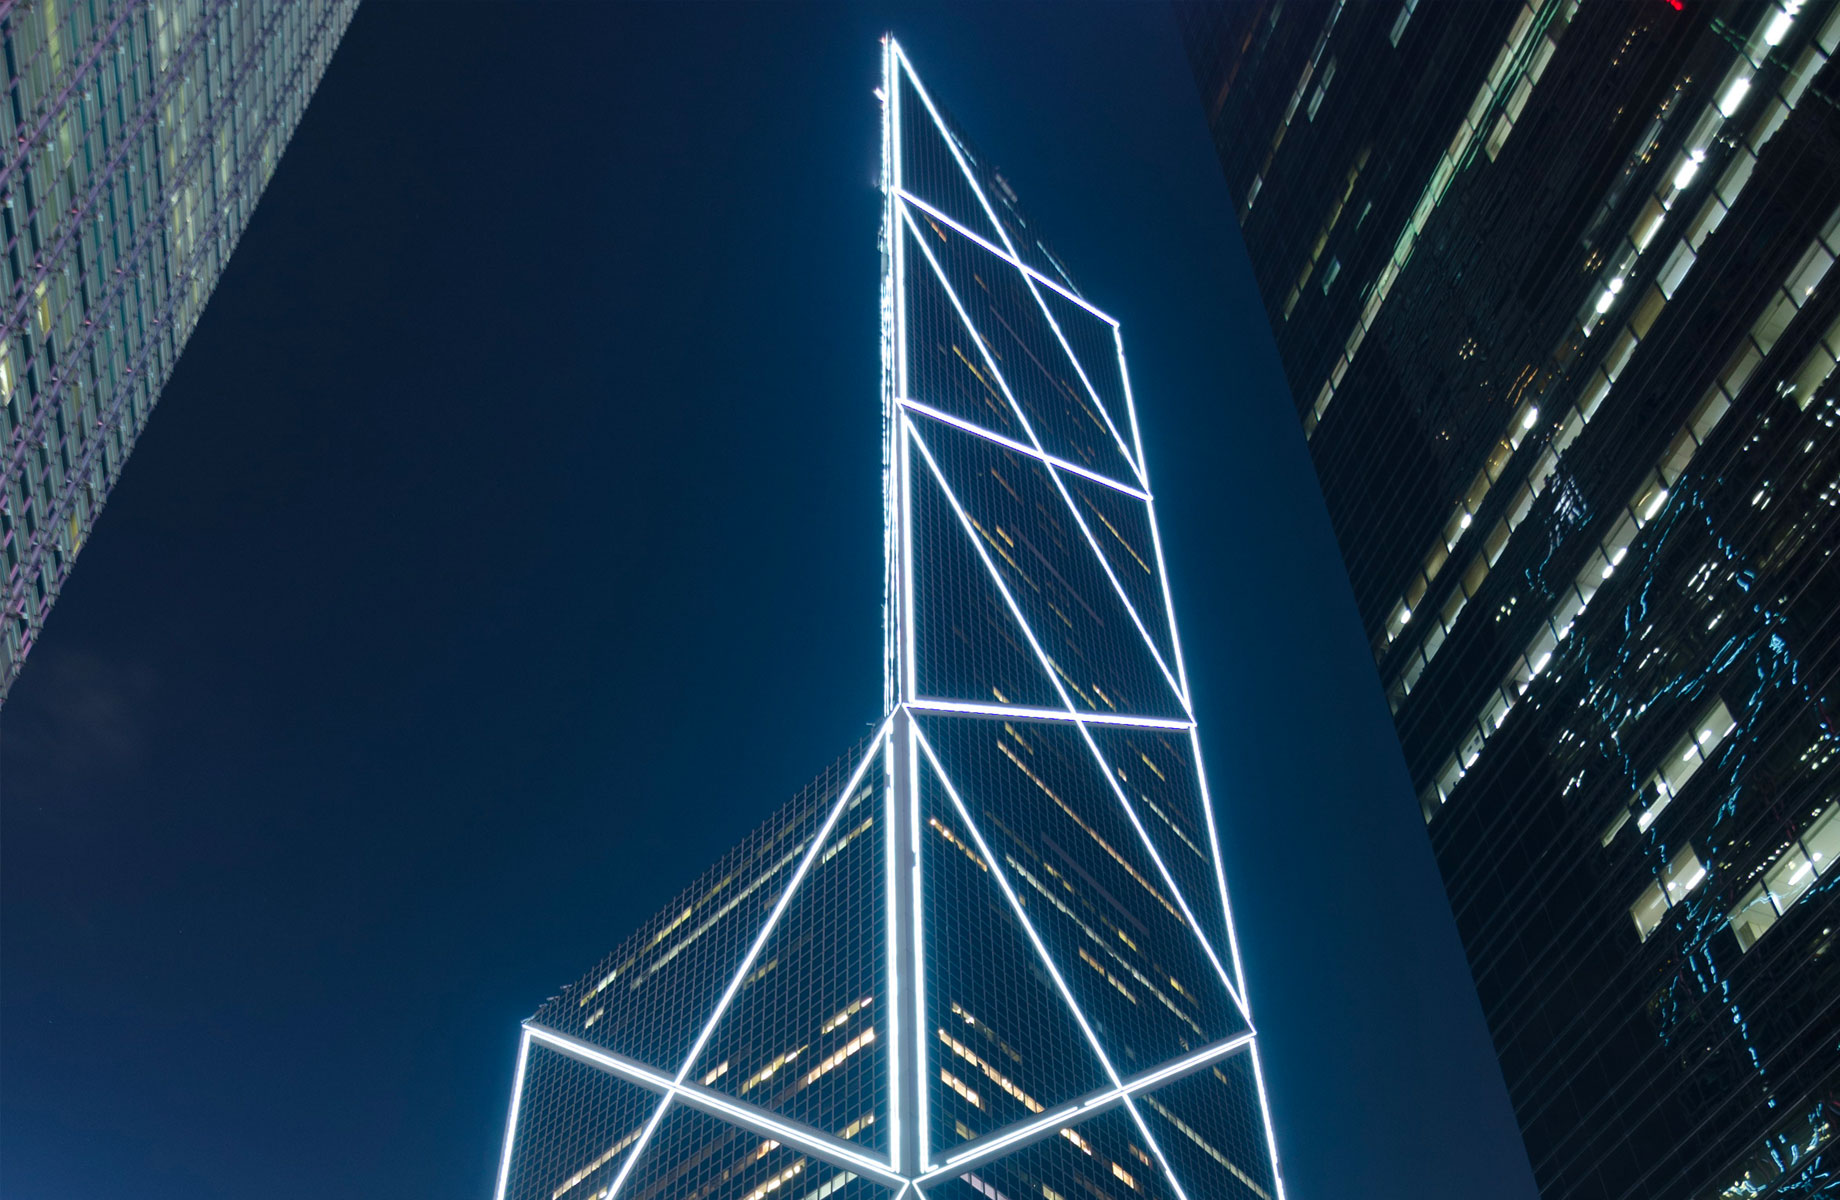 ▲ Taking inspiration from the growth of bamboo, The Bank of China Tower in Hong Kong was the city's tallest building when it was completed in 1989.